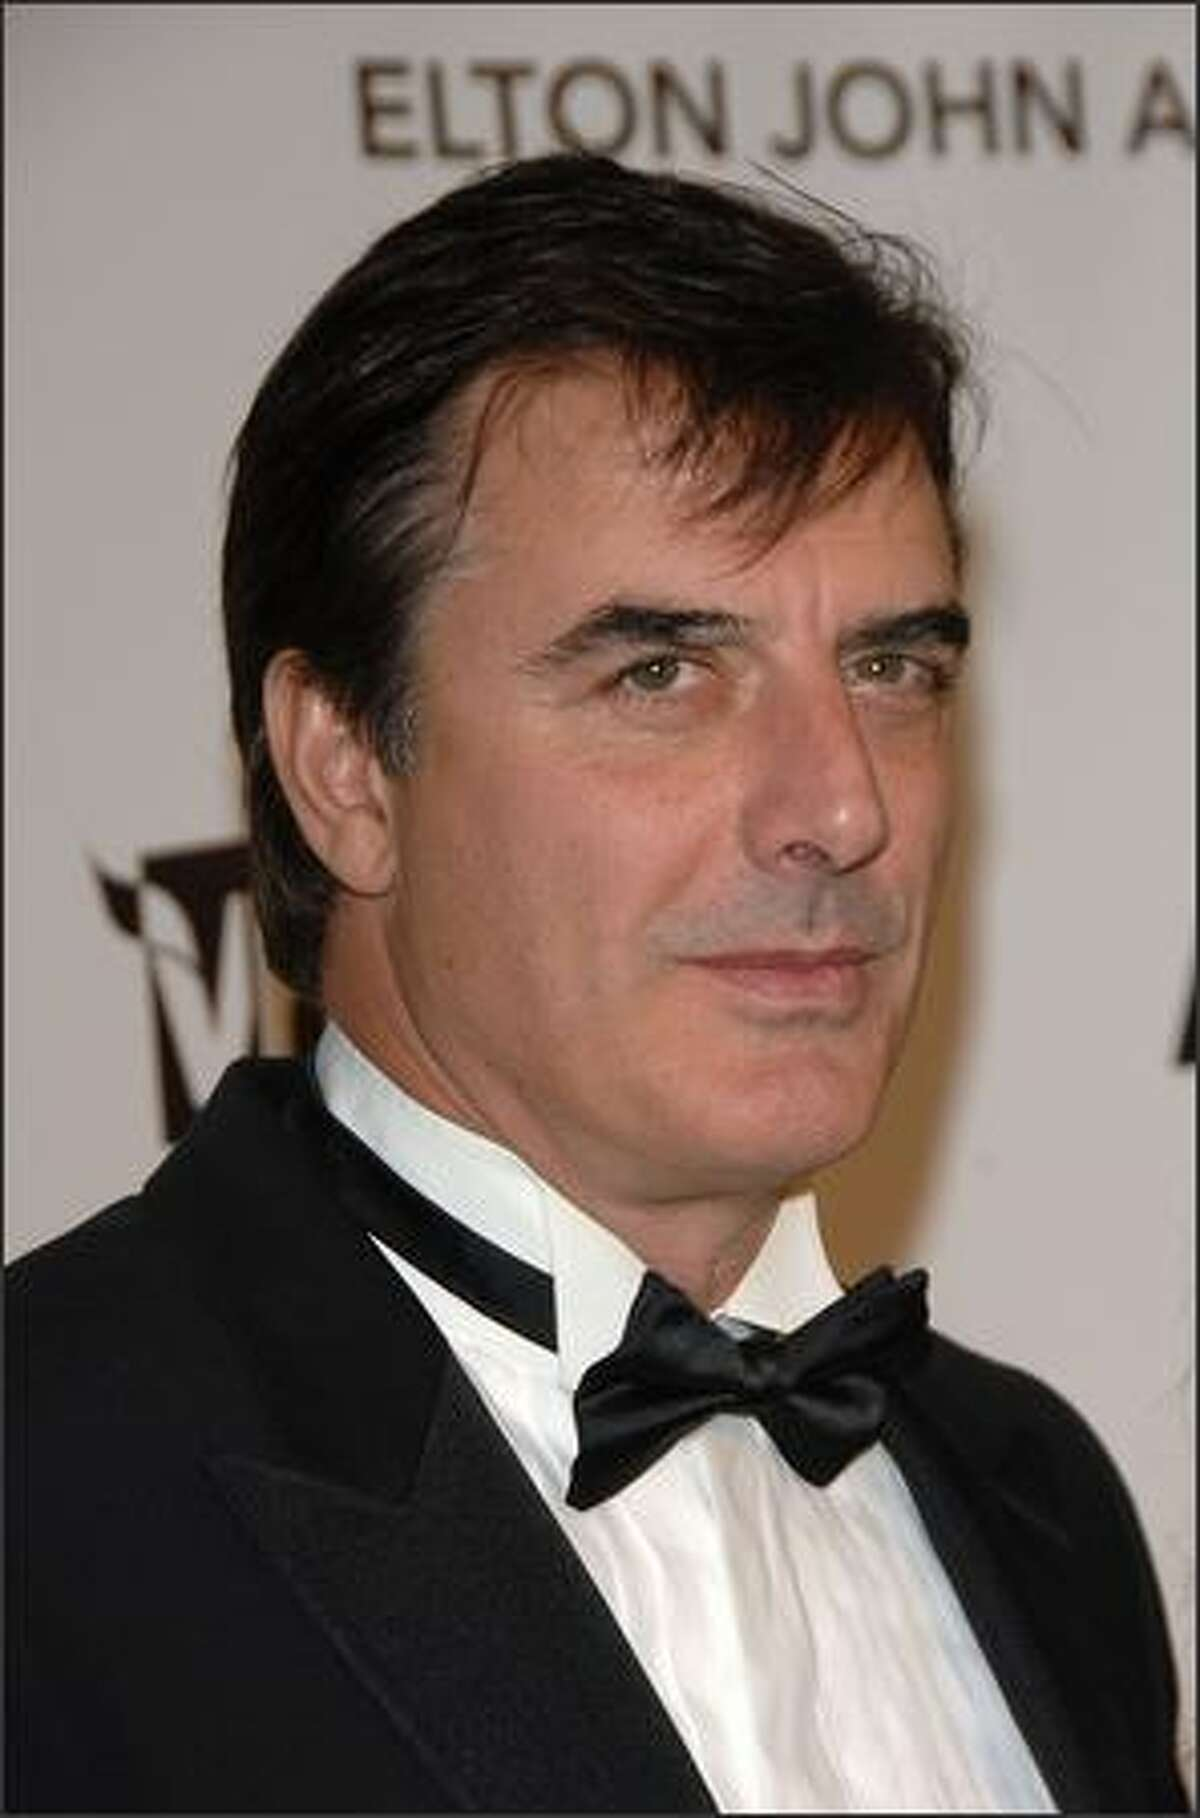 Actor Chris Noth attends the 16th Annual Elton John AIDS Foundation Academy Awards viewing party at the Pacific Design Center in West Hollywood, California.